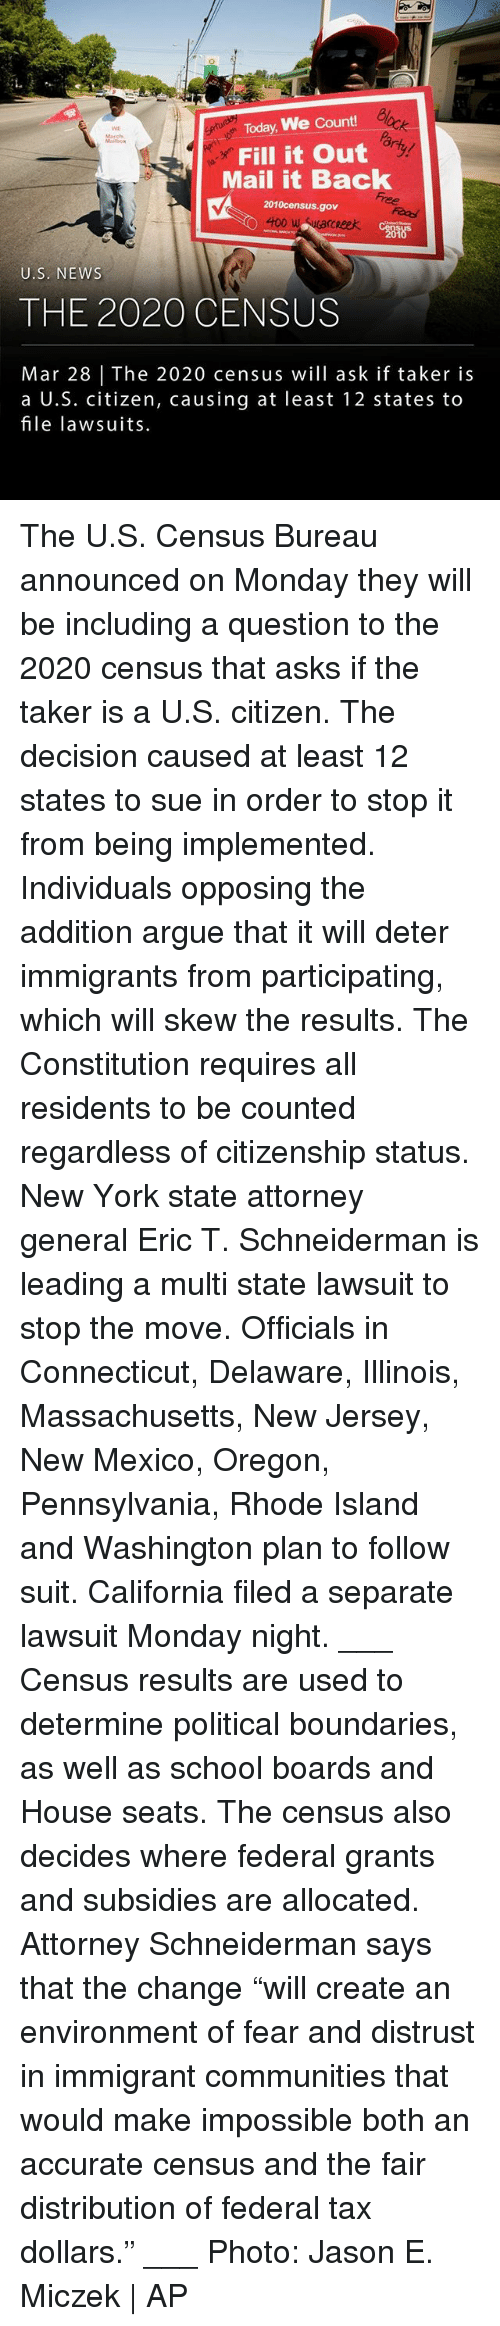 "Rhode Island: WE  March  u Today, We Count!  Fill it Out  Mail it Back  2010census.gov  cReek  U.S. NEWs  THE 2020 CENSUS  Mar 28 The 2020 census will ask if taker is  a U.S. citizen, causing at least 12 states to  file lawsuits. The U.S. Census Bureau announced on Monday they will be including a question to the 2020 census that asks if the taker is a U.S. citizen. The decision caused at least 12 states to sue in order to stop it from being implemented. Individuals opposing the addition argue that it will deter immigrants from participating, which will skew the results. The Constitution requires all residents to be counted regardless of citizenship status. New York state attorney general Eric T. Schneiderman is leading a multi state lawsuit to stop the move. Officials in Connecticut, Delaware, Illinois, Massachusetts, New Jersey, New Mexico, Oregon, Pennsylvania, Rhode Island and Washington plan to follow suit. California filed a separate lawsuit Monday night. ___ Census results are used to determine political boundaries, as well as school boards and House seats. The census also decides where federal grants and subsidies are allocated. Attorney Schneiderman says that the change ""will create an environment of fear and distrust in immigrant communities that would make impossible both an accurate census and the fair distribution of federal tax dollars."" ___ Photo: Jason E. Miczek 